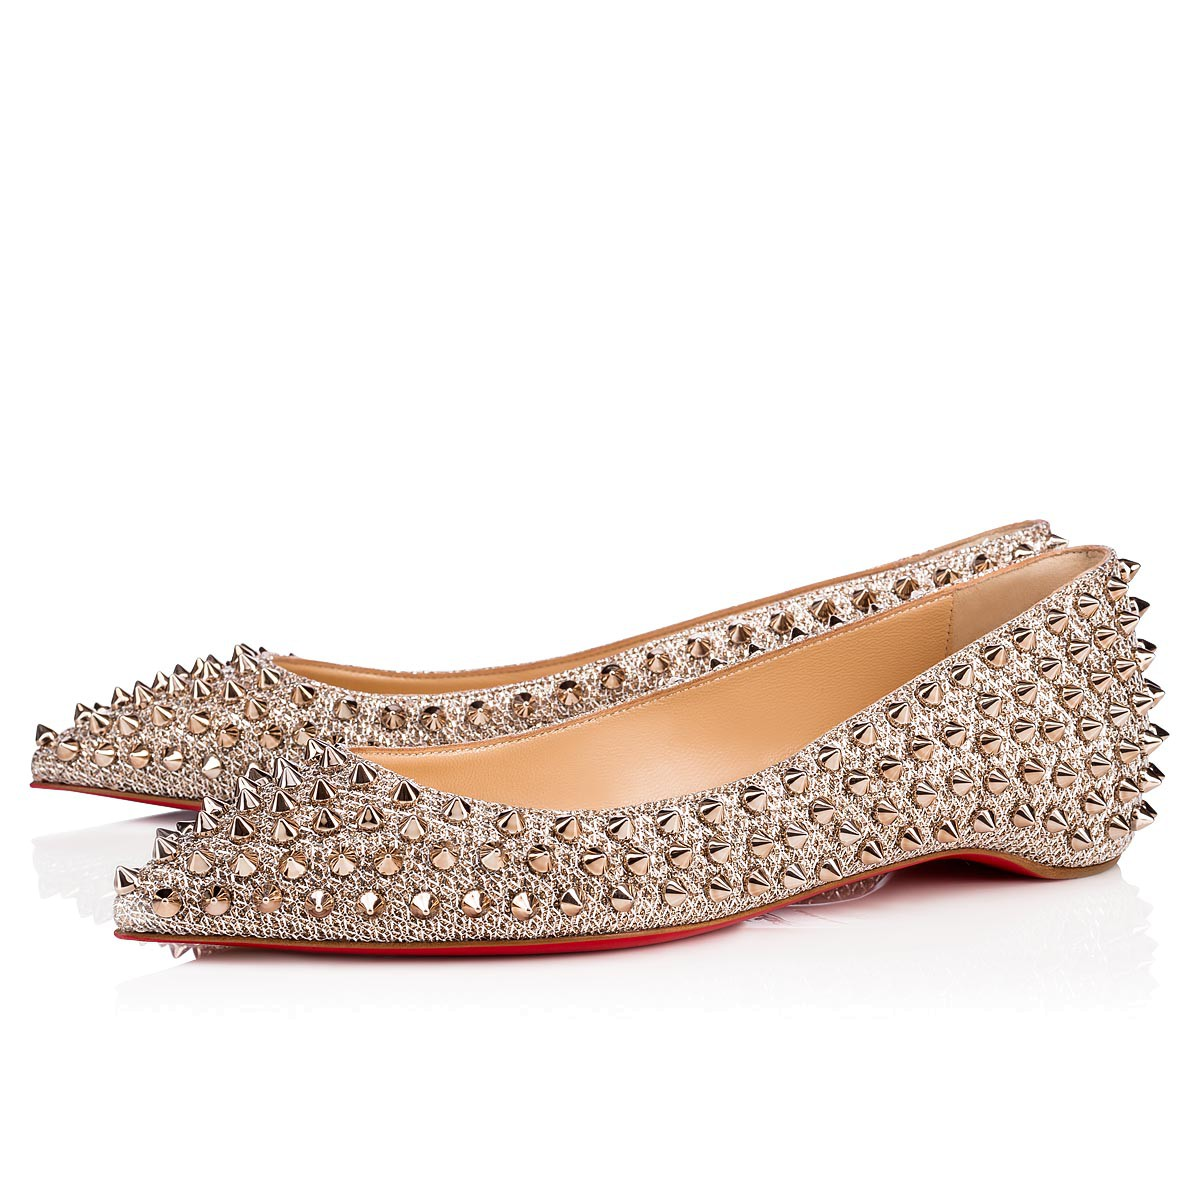 鞋履 - Follies Spikes - Christian Louboutin